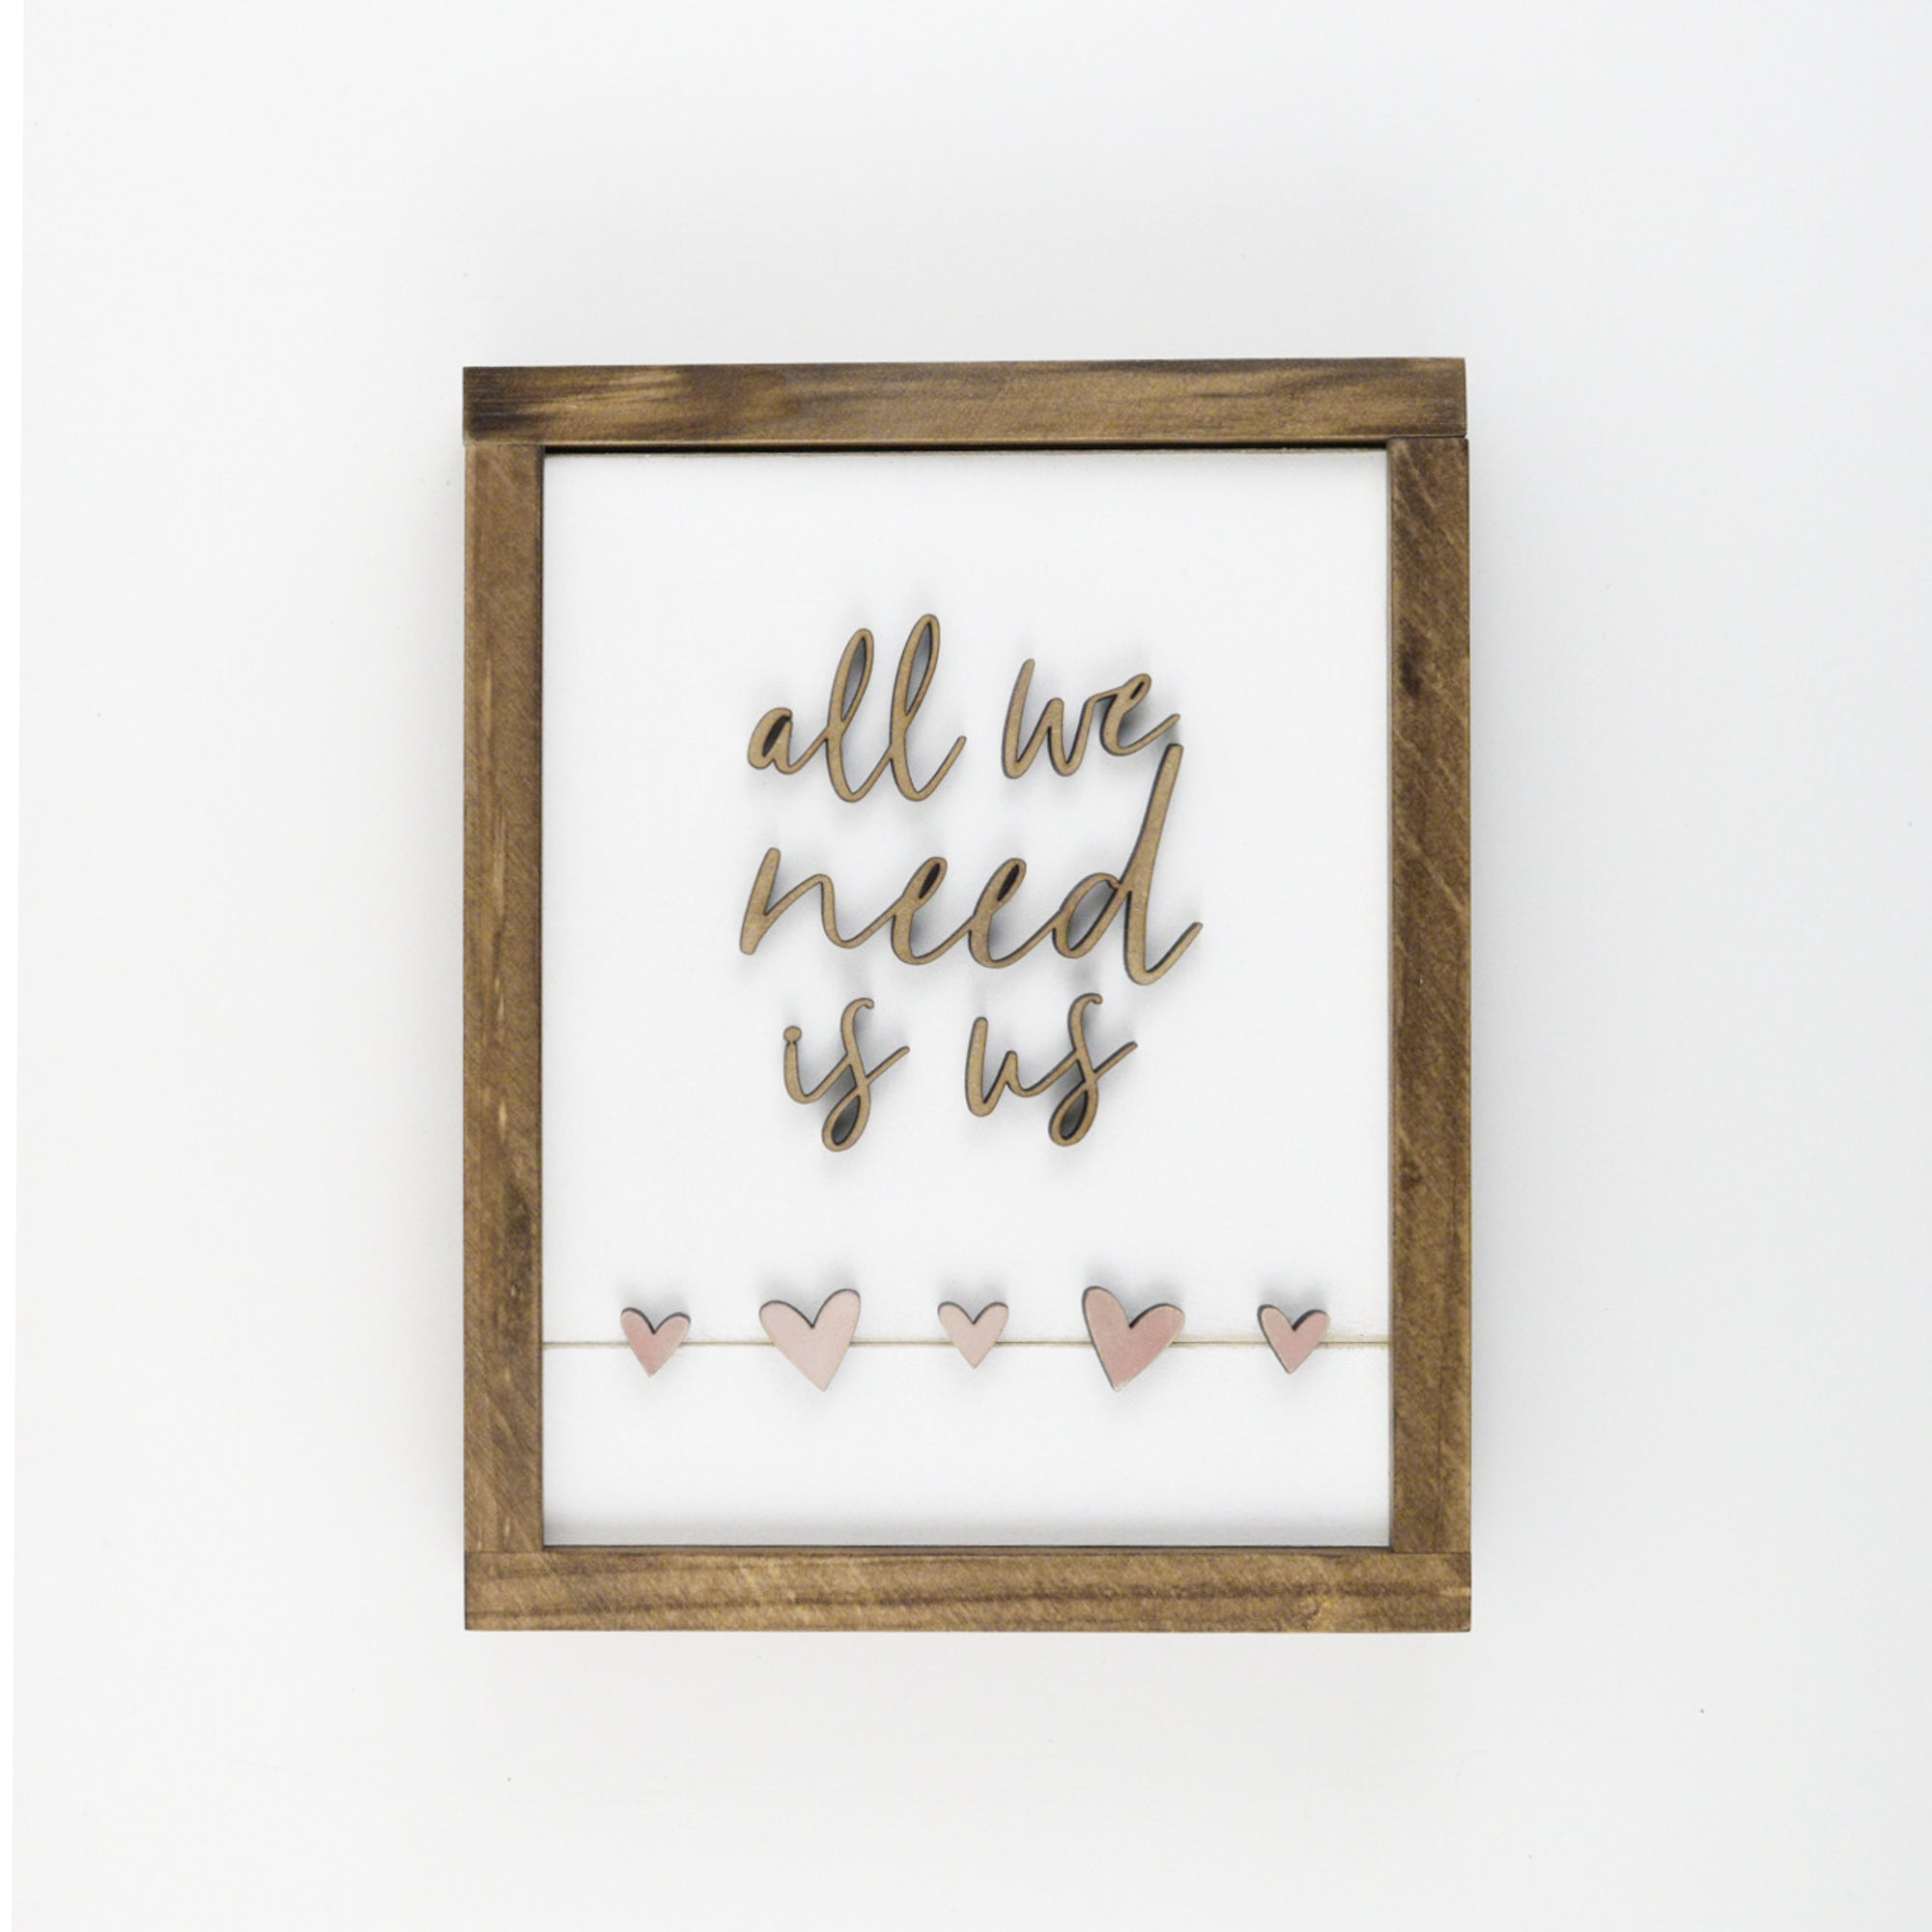 All We Need Is Us | DIY Insert Kit | Size B